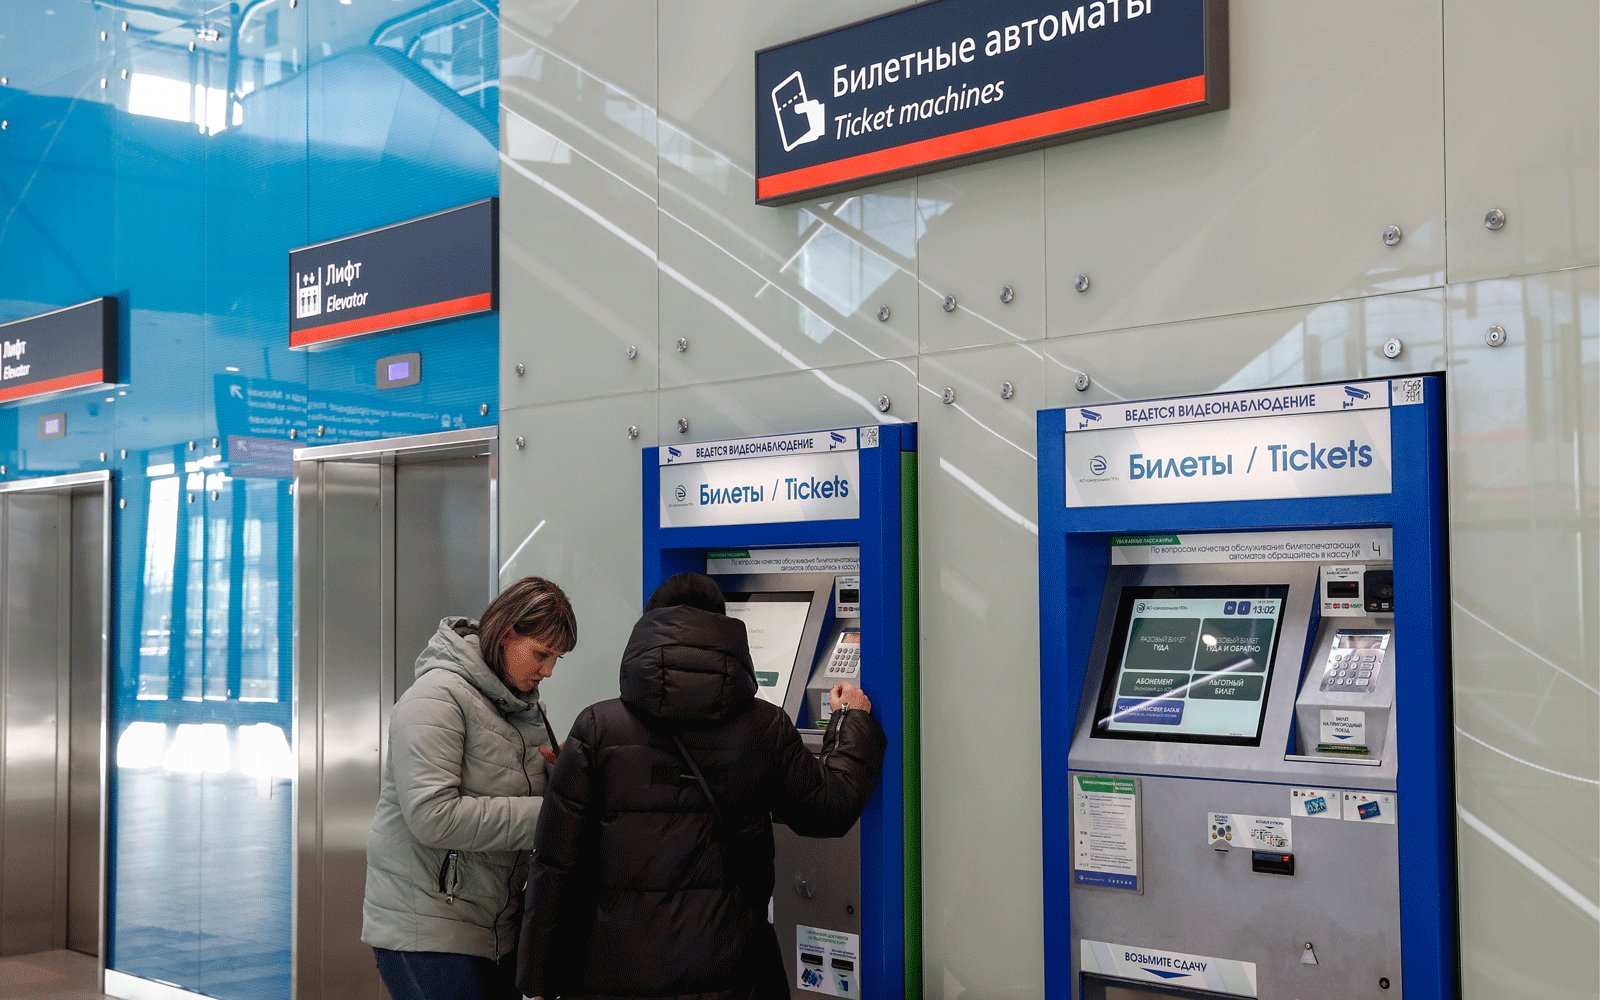 Russia's new railway ticket machines